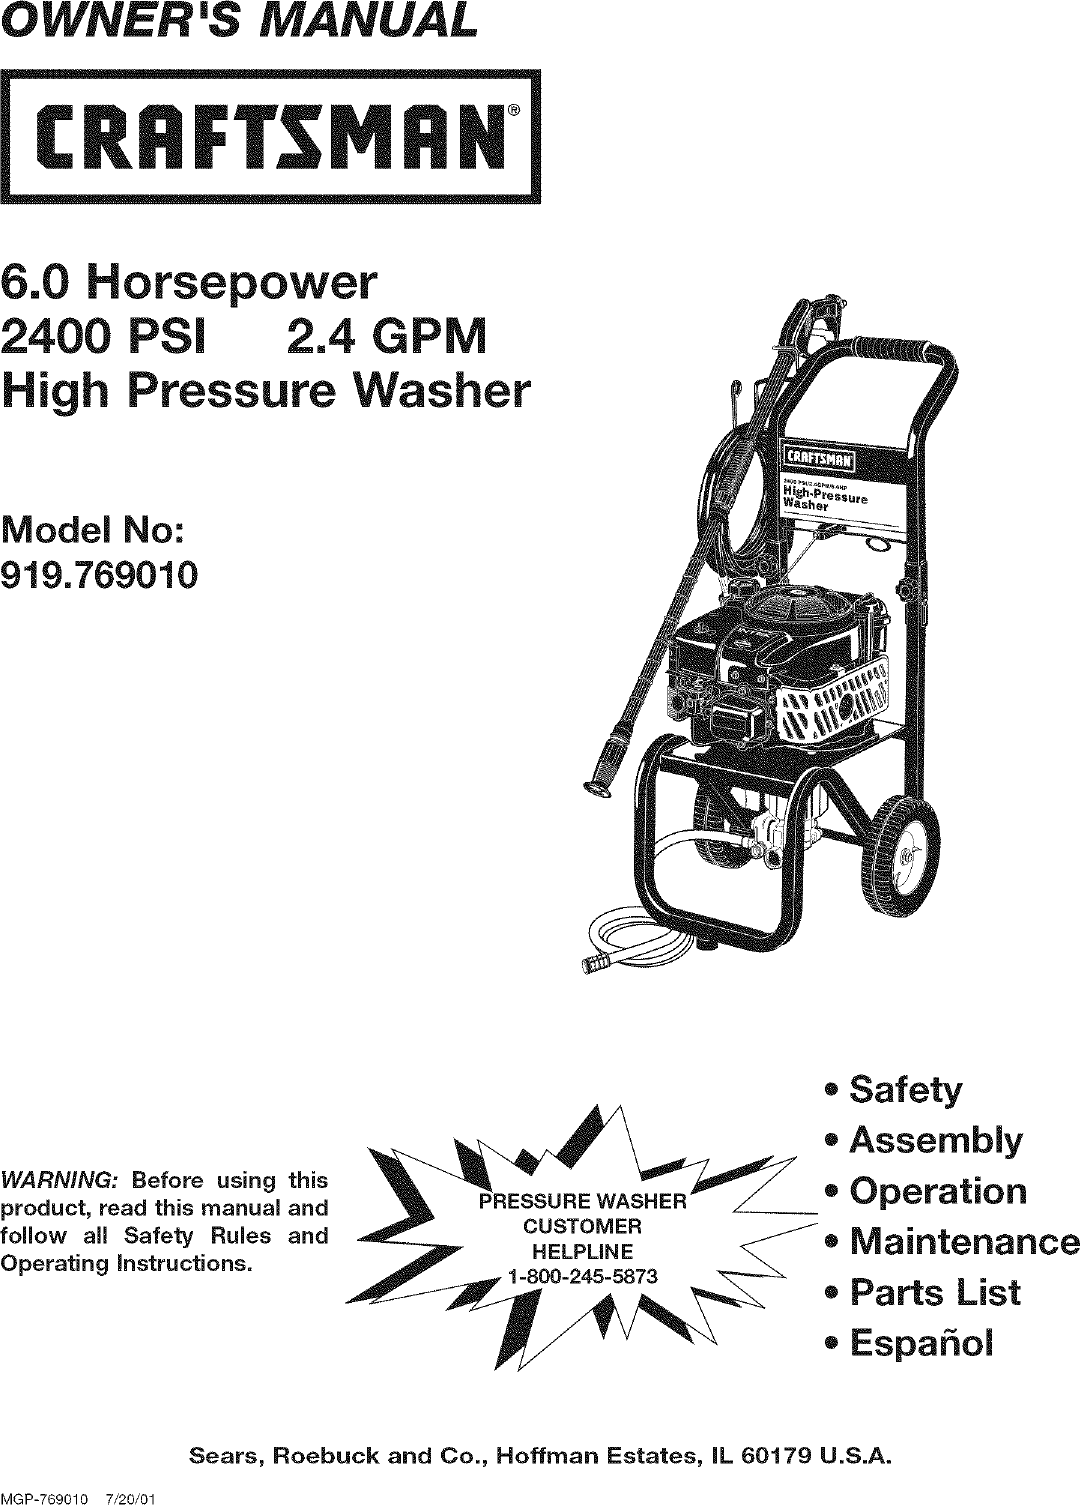 Craftsman 919769010 User Manual PRESSURE WASHER Manuals